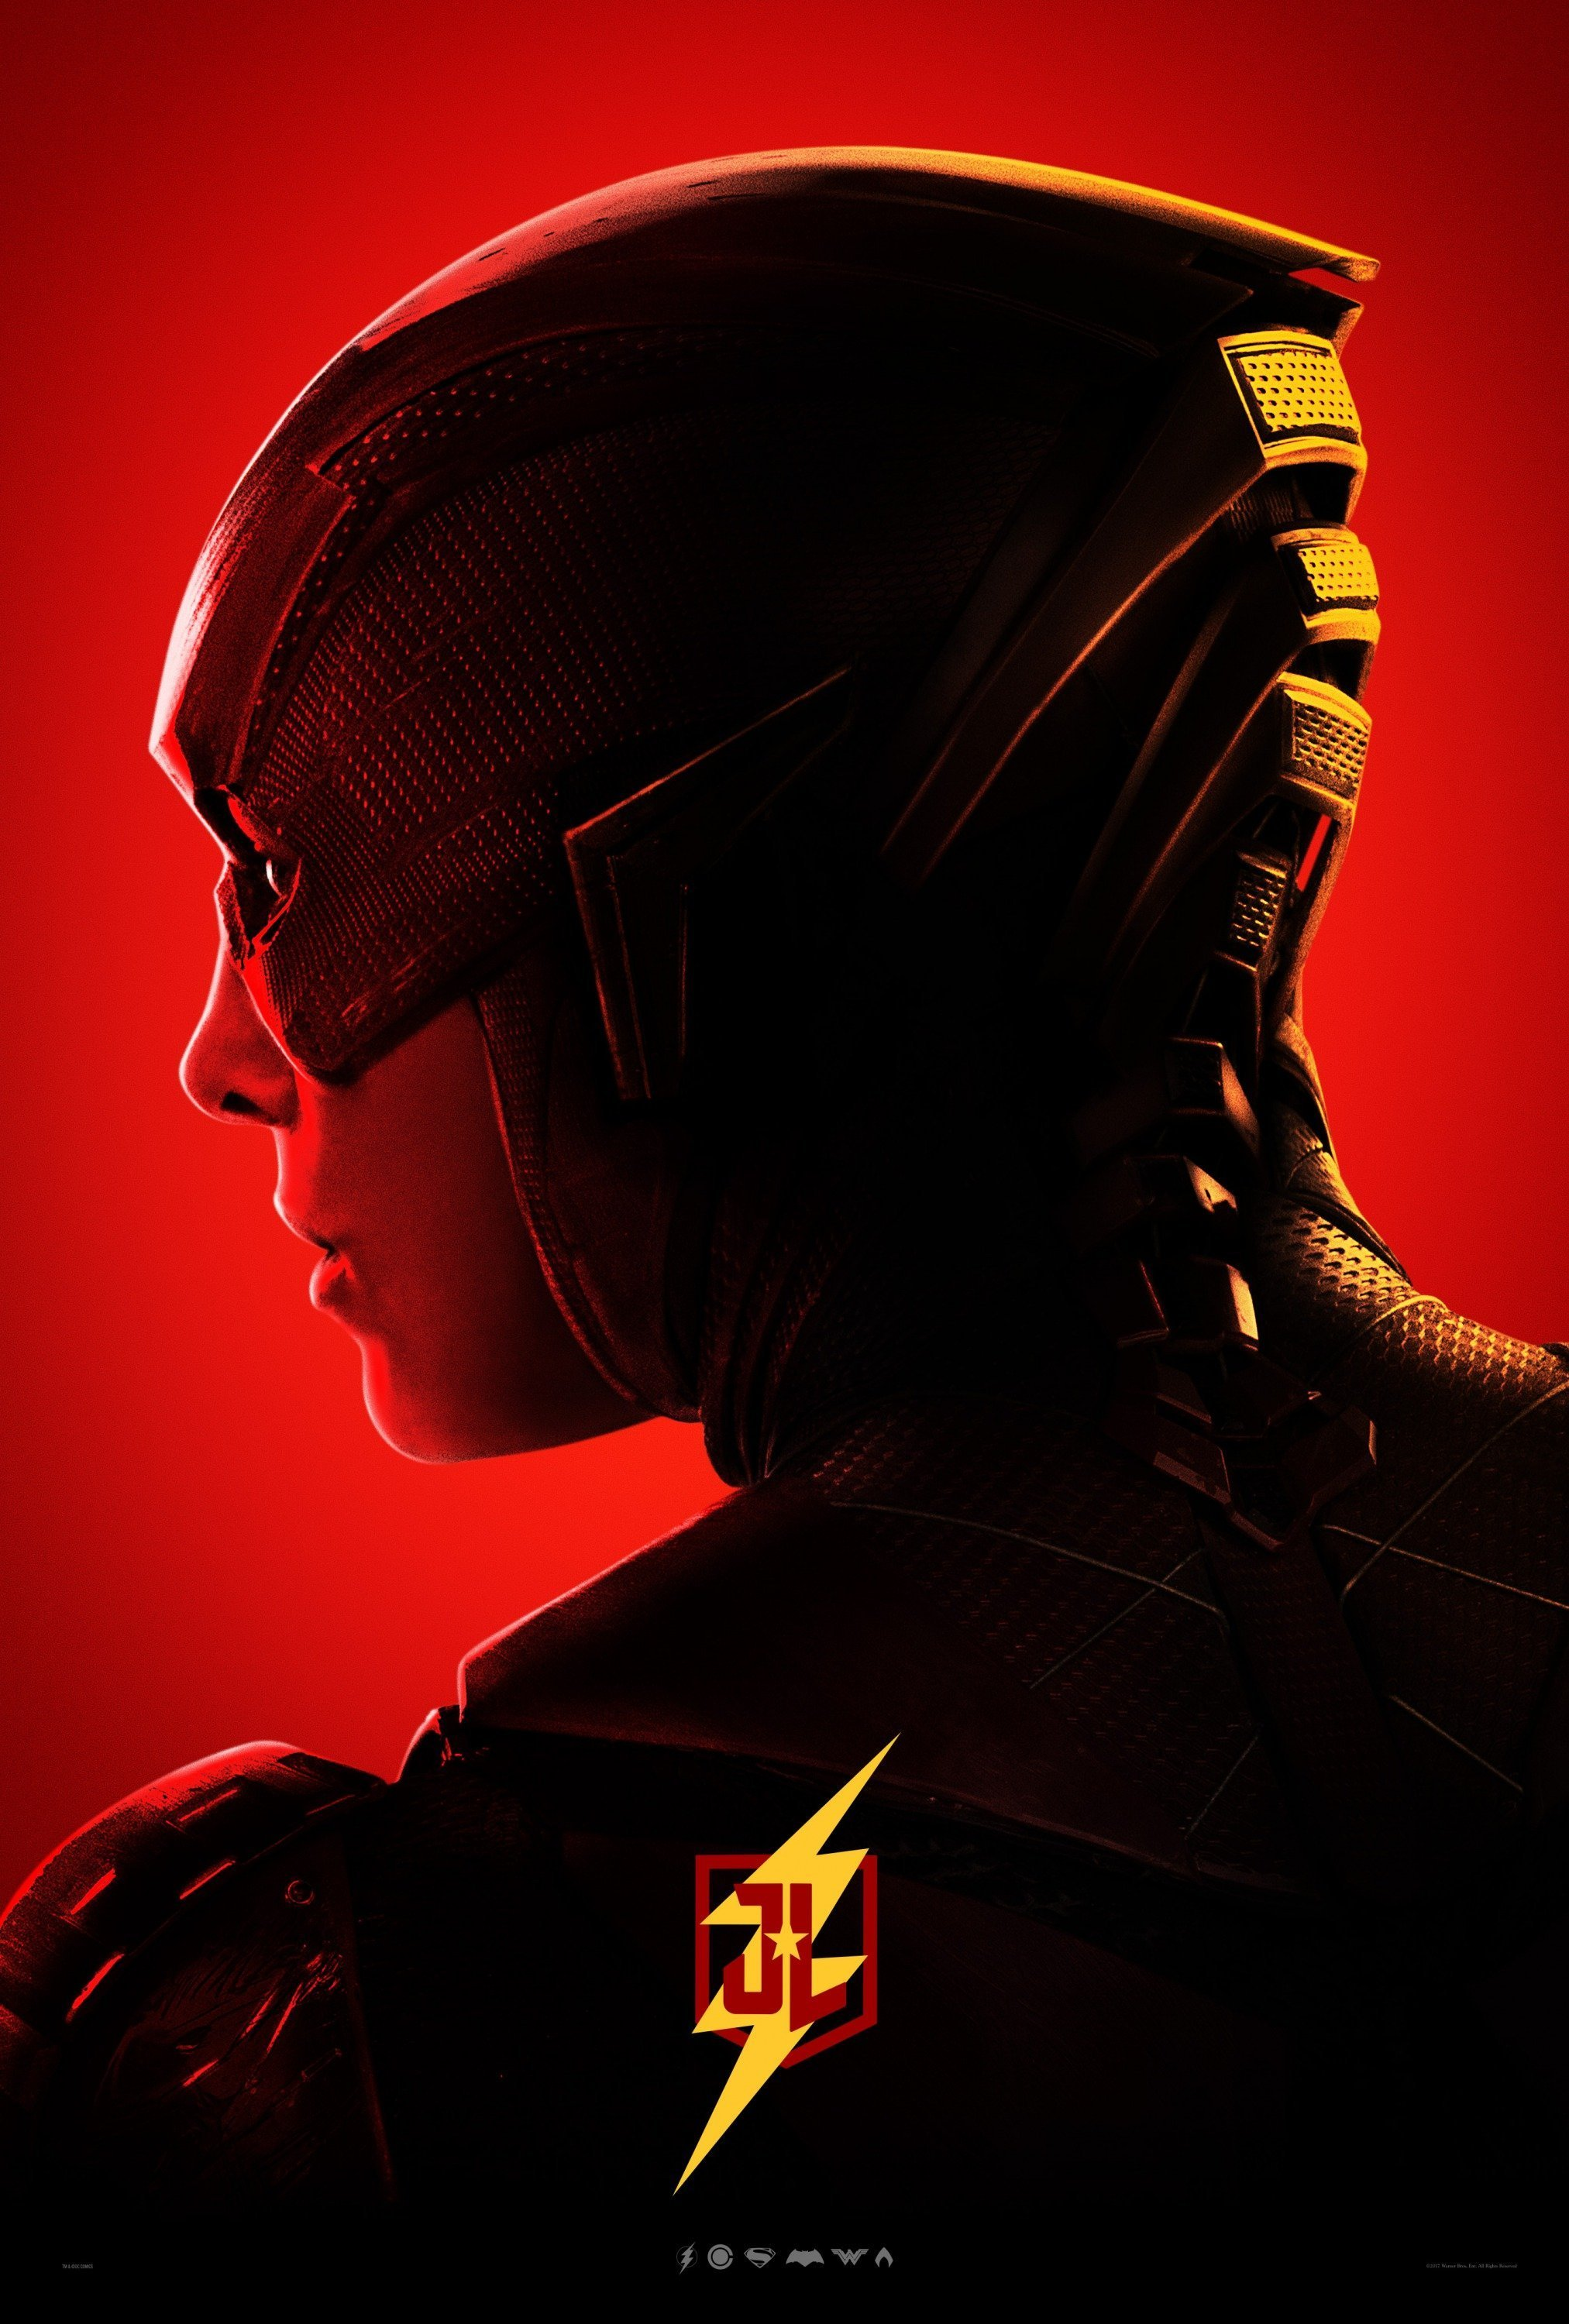 Poster rouge du film Justice League avec Flash